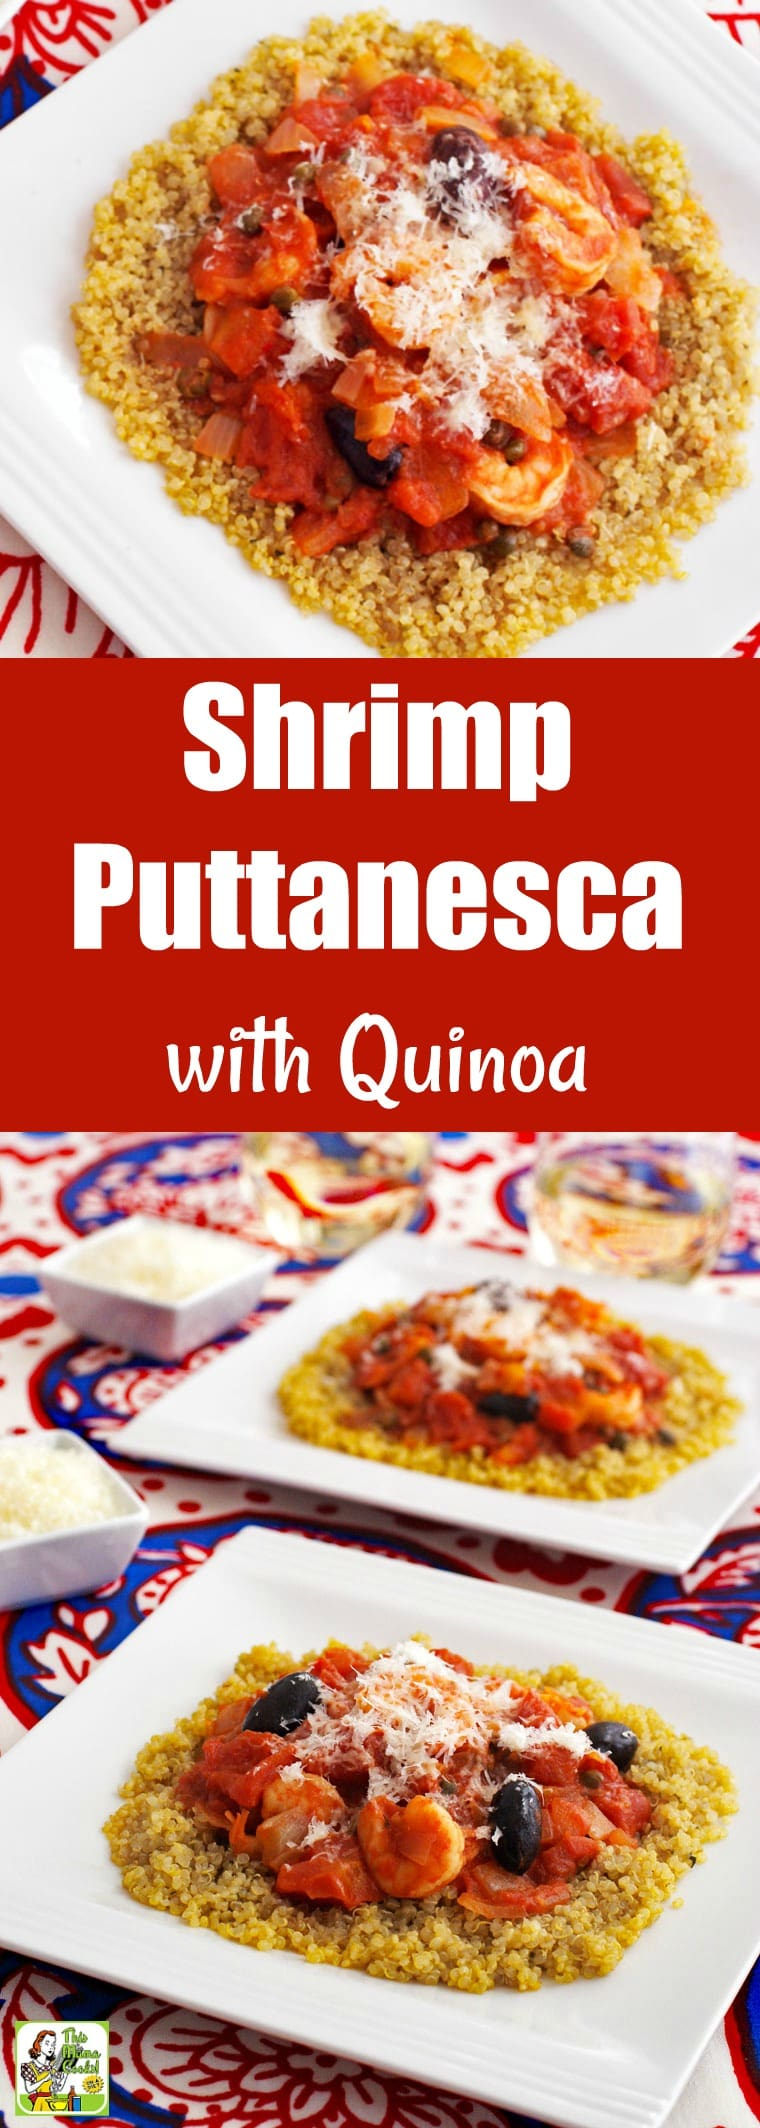 Shrimp Puttanesca can be made in 30 minutes. Based on spaghetti alla puttanesca, it's made with olives, tomatoes, garlic, capers, wine, and onions. To keep it gluten-free, it\'s served on quinoa, but you can dish up this quick and easy dinner recipe on to gluten-free pasta or whole wheat spaghetti. #recipes #easy #recipeoftheday #glutenfree #easyrecipe #easyrecipes #glutenfreerecipes #dinner #easydinner #dinnerrecipes #dinnerideas #pasta #quinoa #shrimp